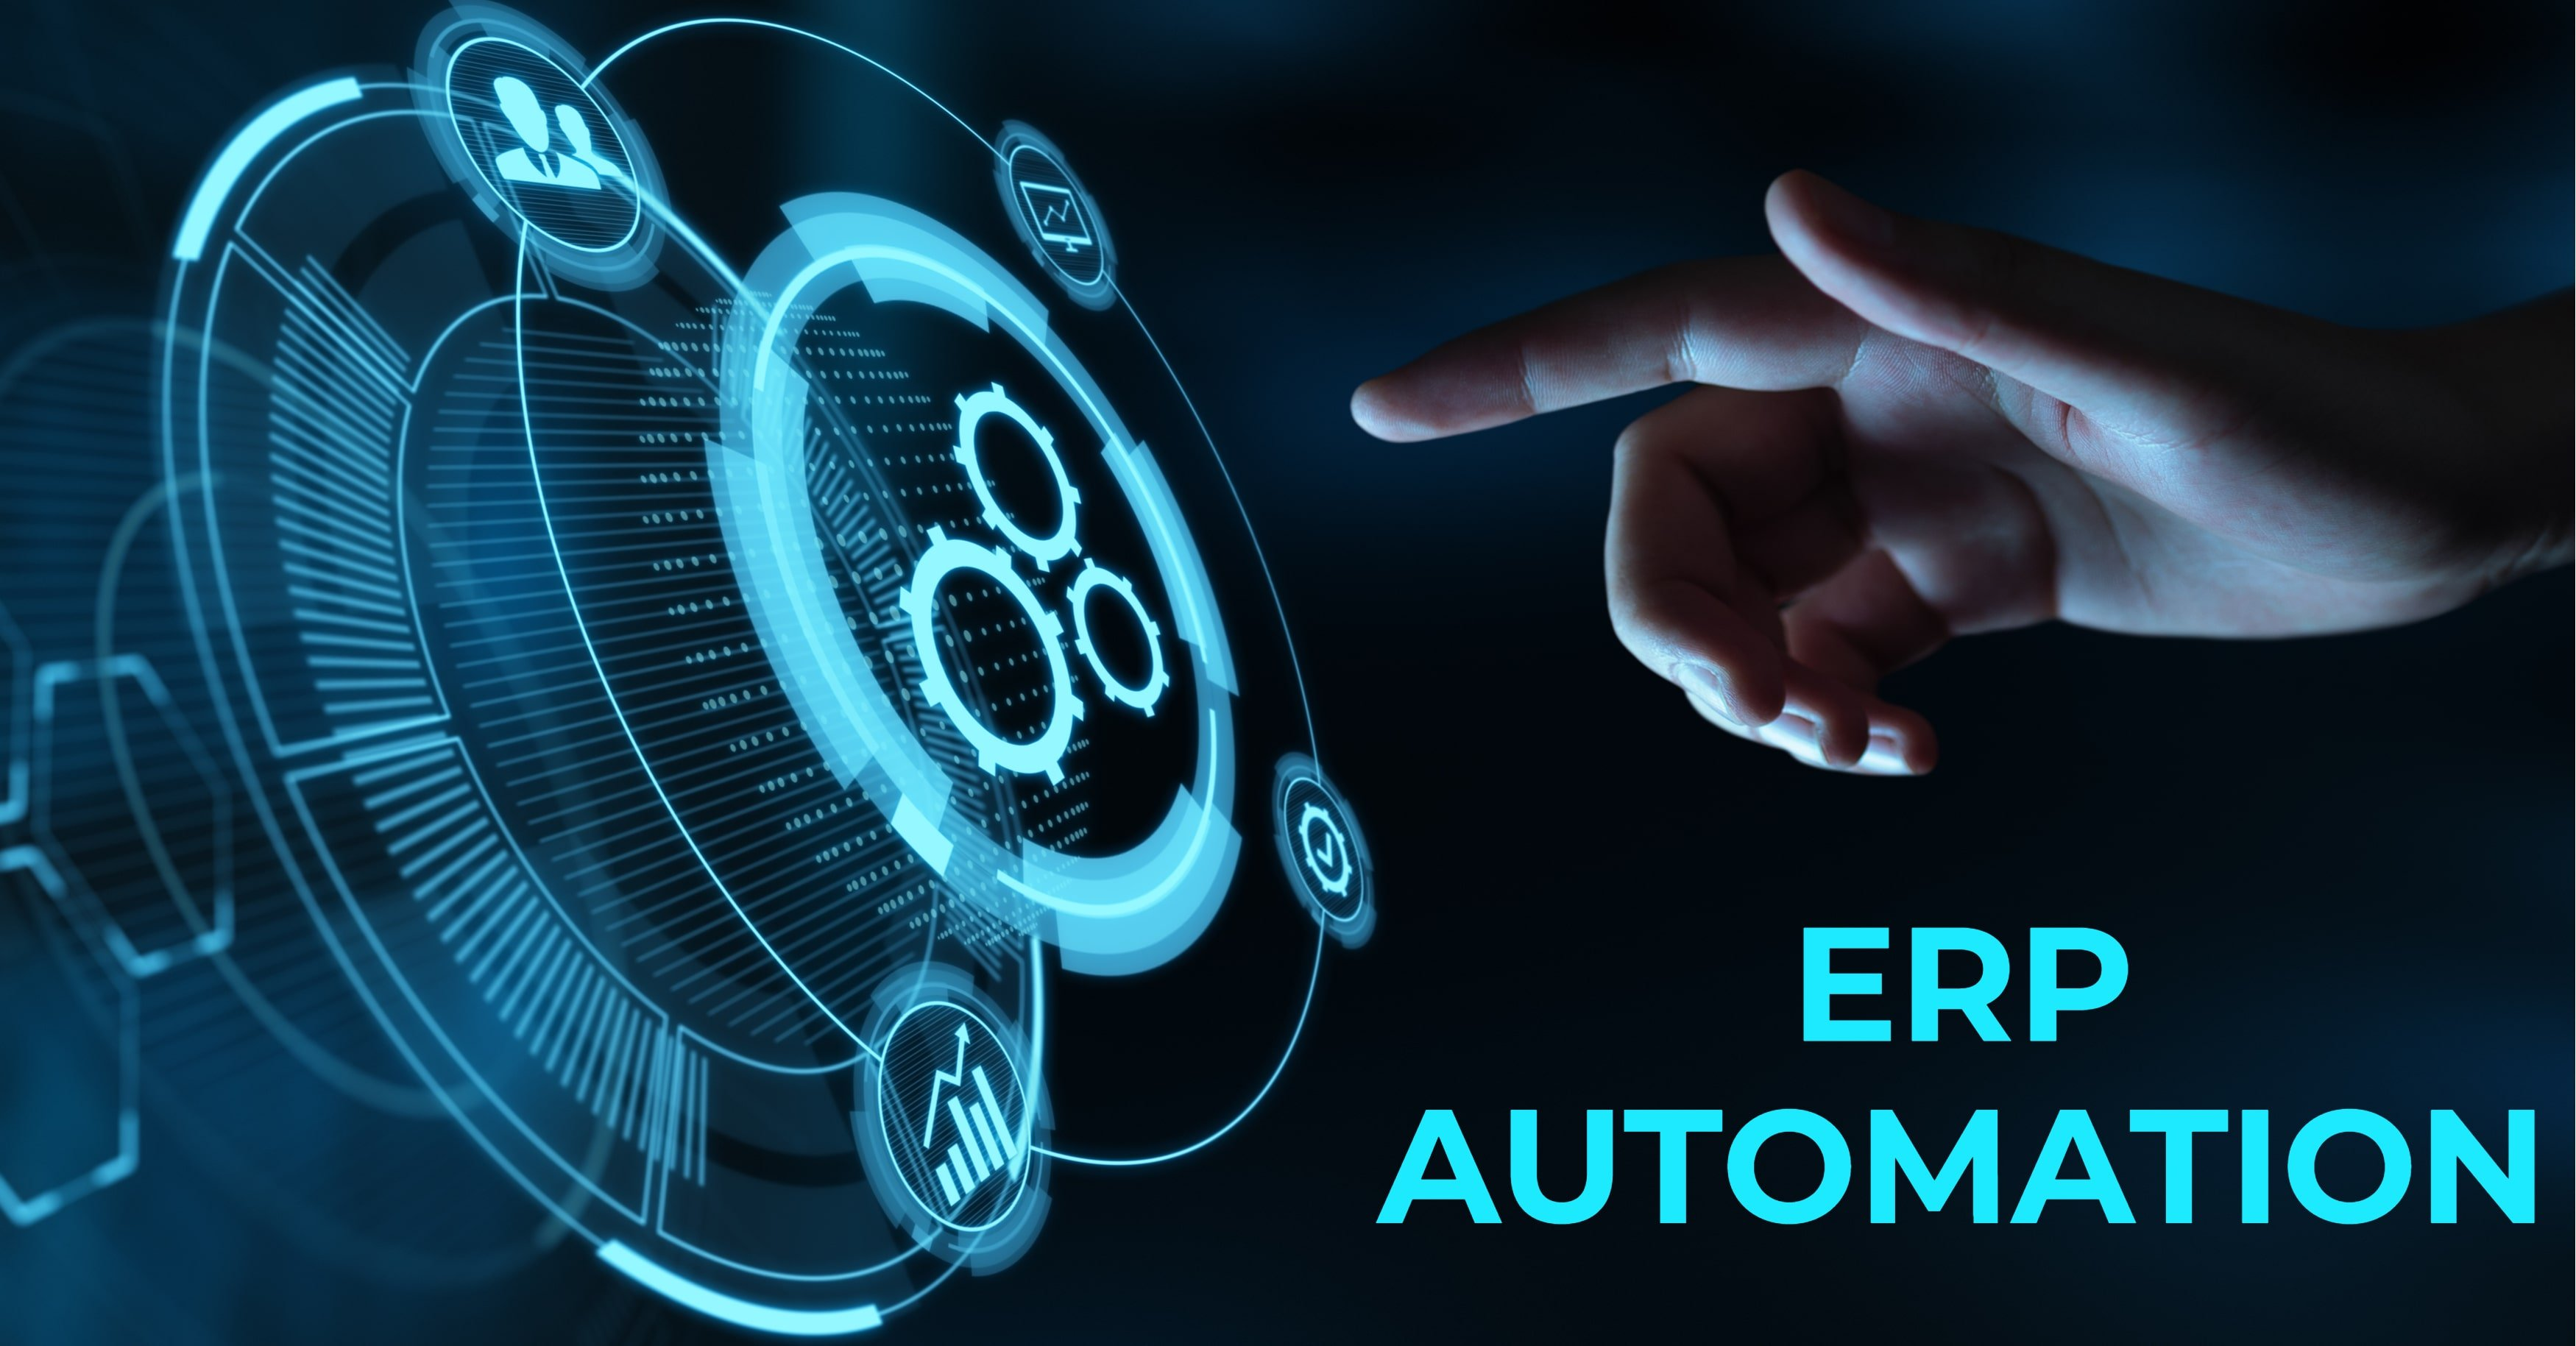 How Does ERP Reduce Manual Tasks?